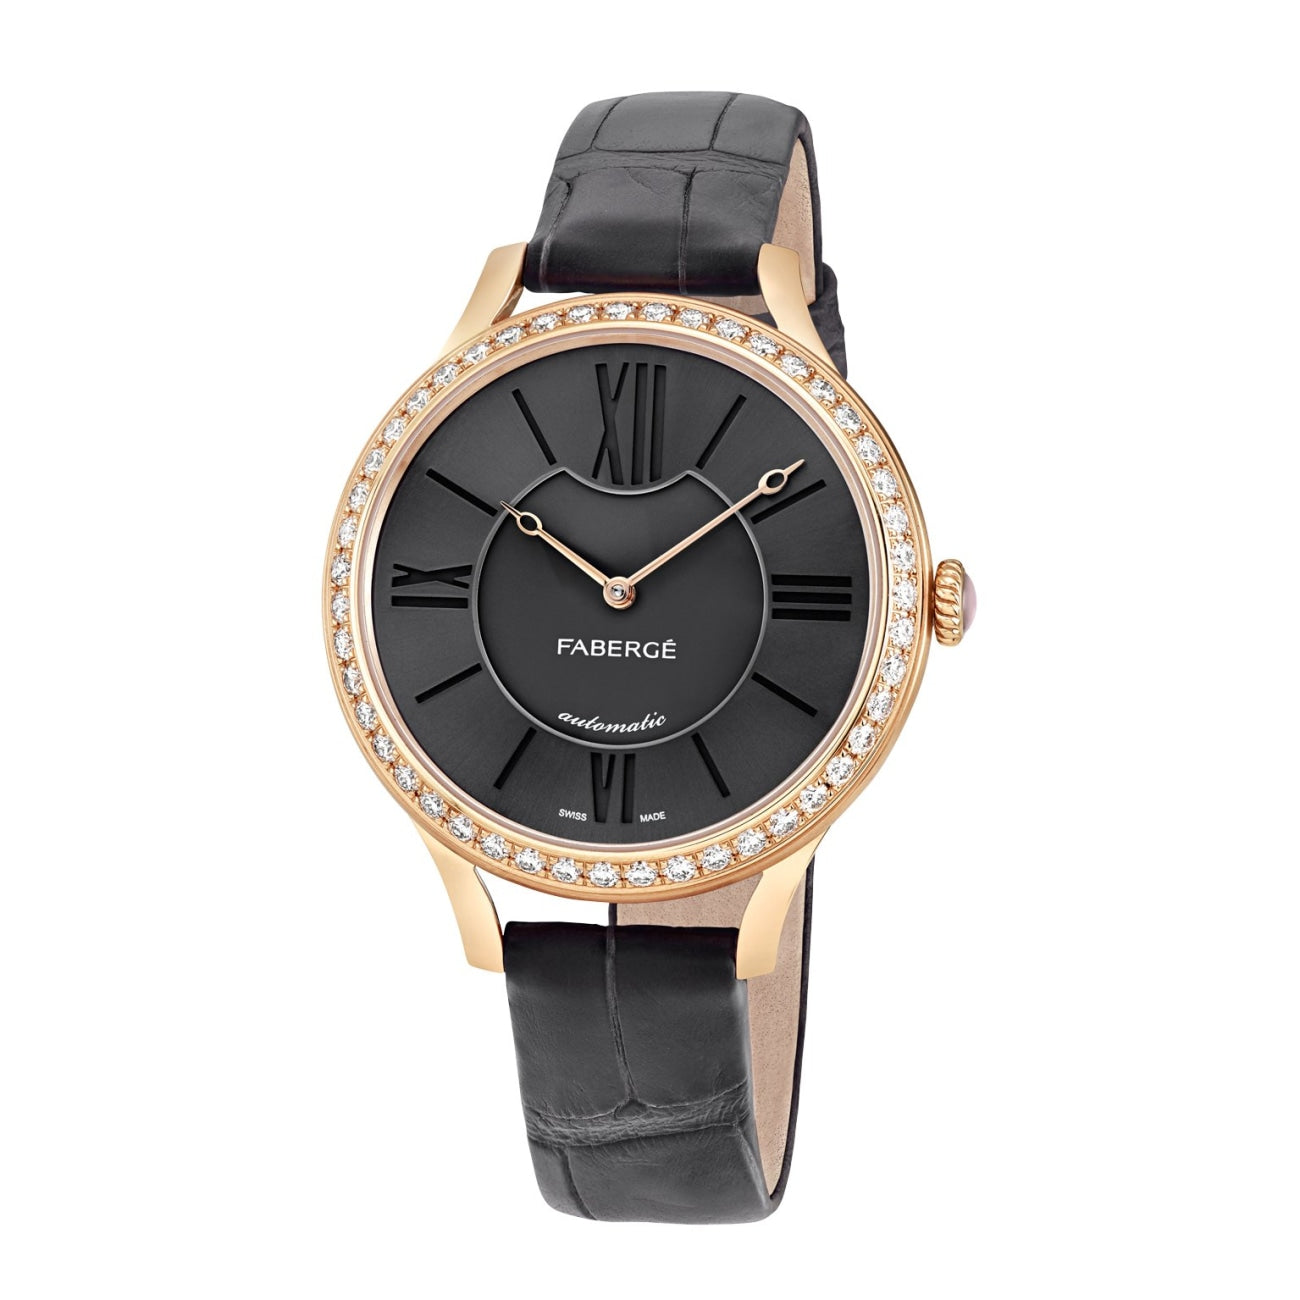 Fabergé Watches - Flirt 36MM 18 Karat Rose Gold - Anthracite Dial | Manfredi Jewels